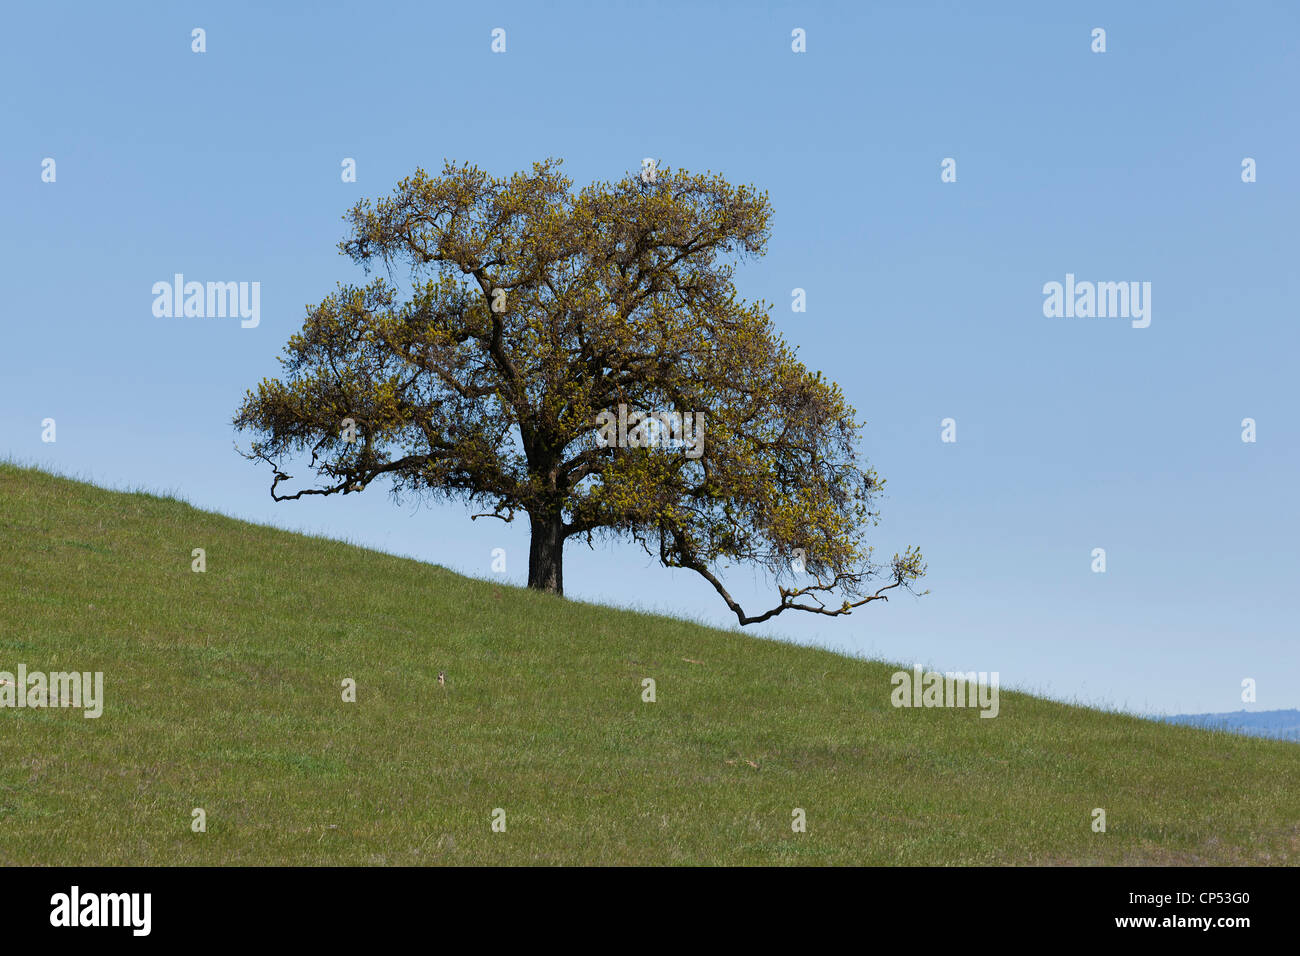 A lone tree on a steep hill slope - Stock Image